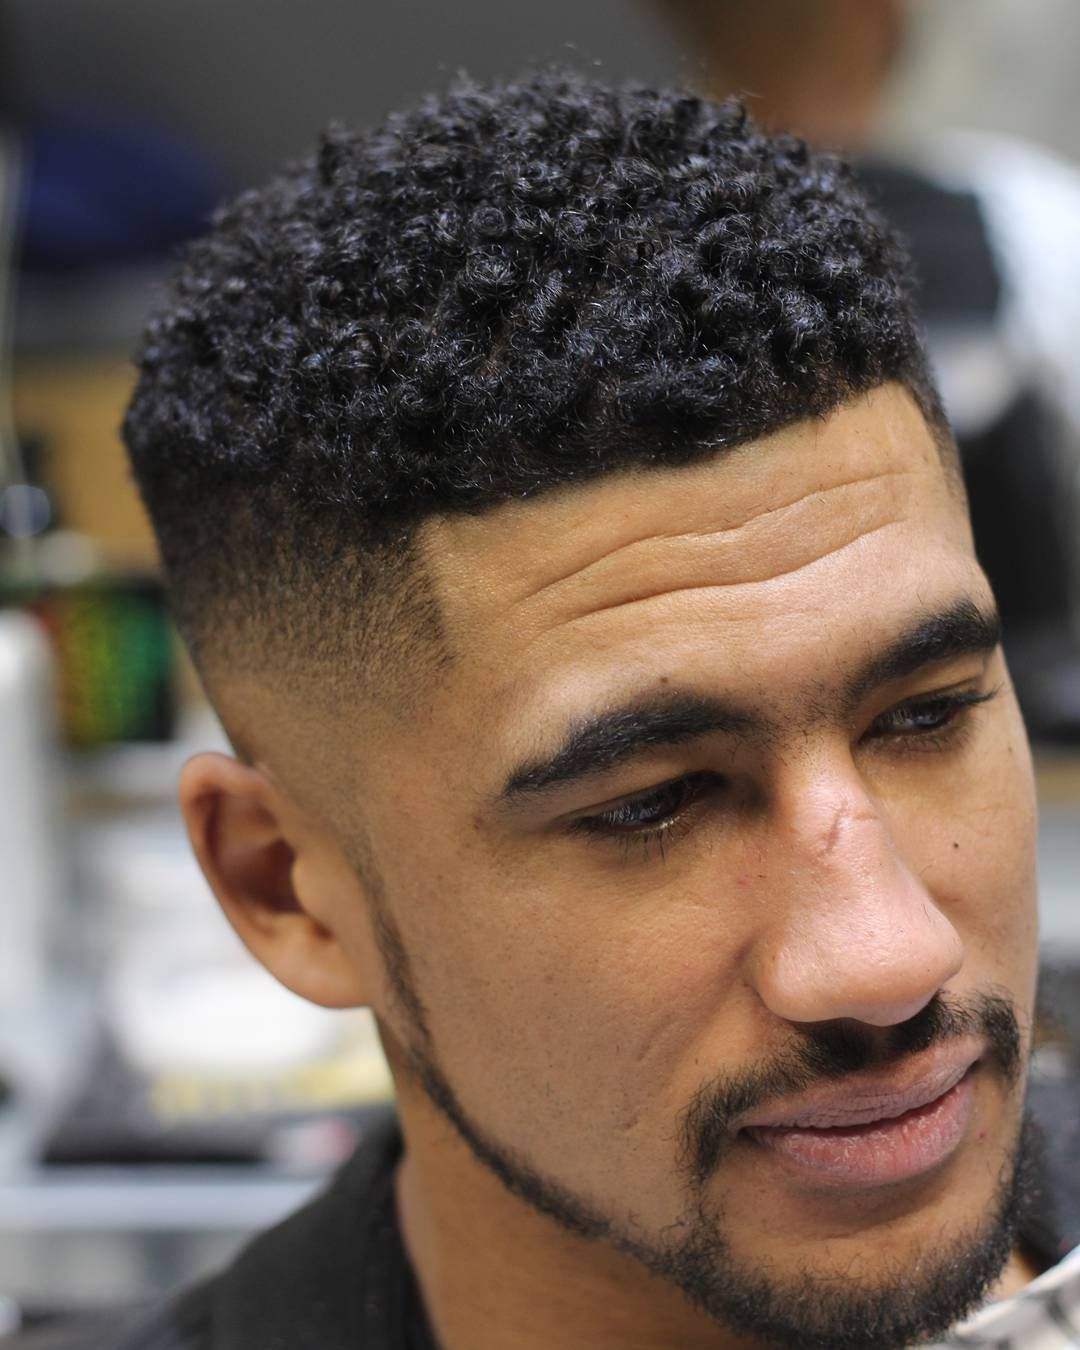 HAIRCUTS FOR MEN WITH CURLY HAIR SMALL TIGHT CURLS